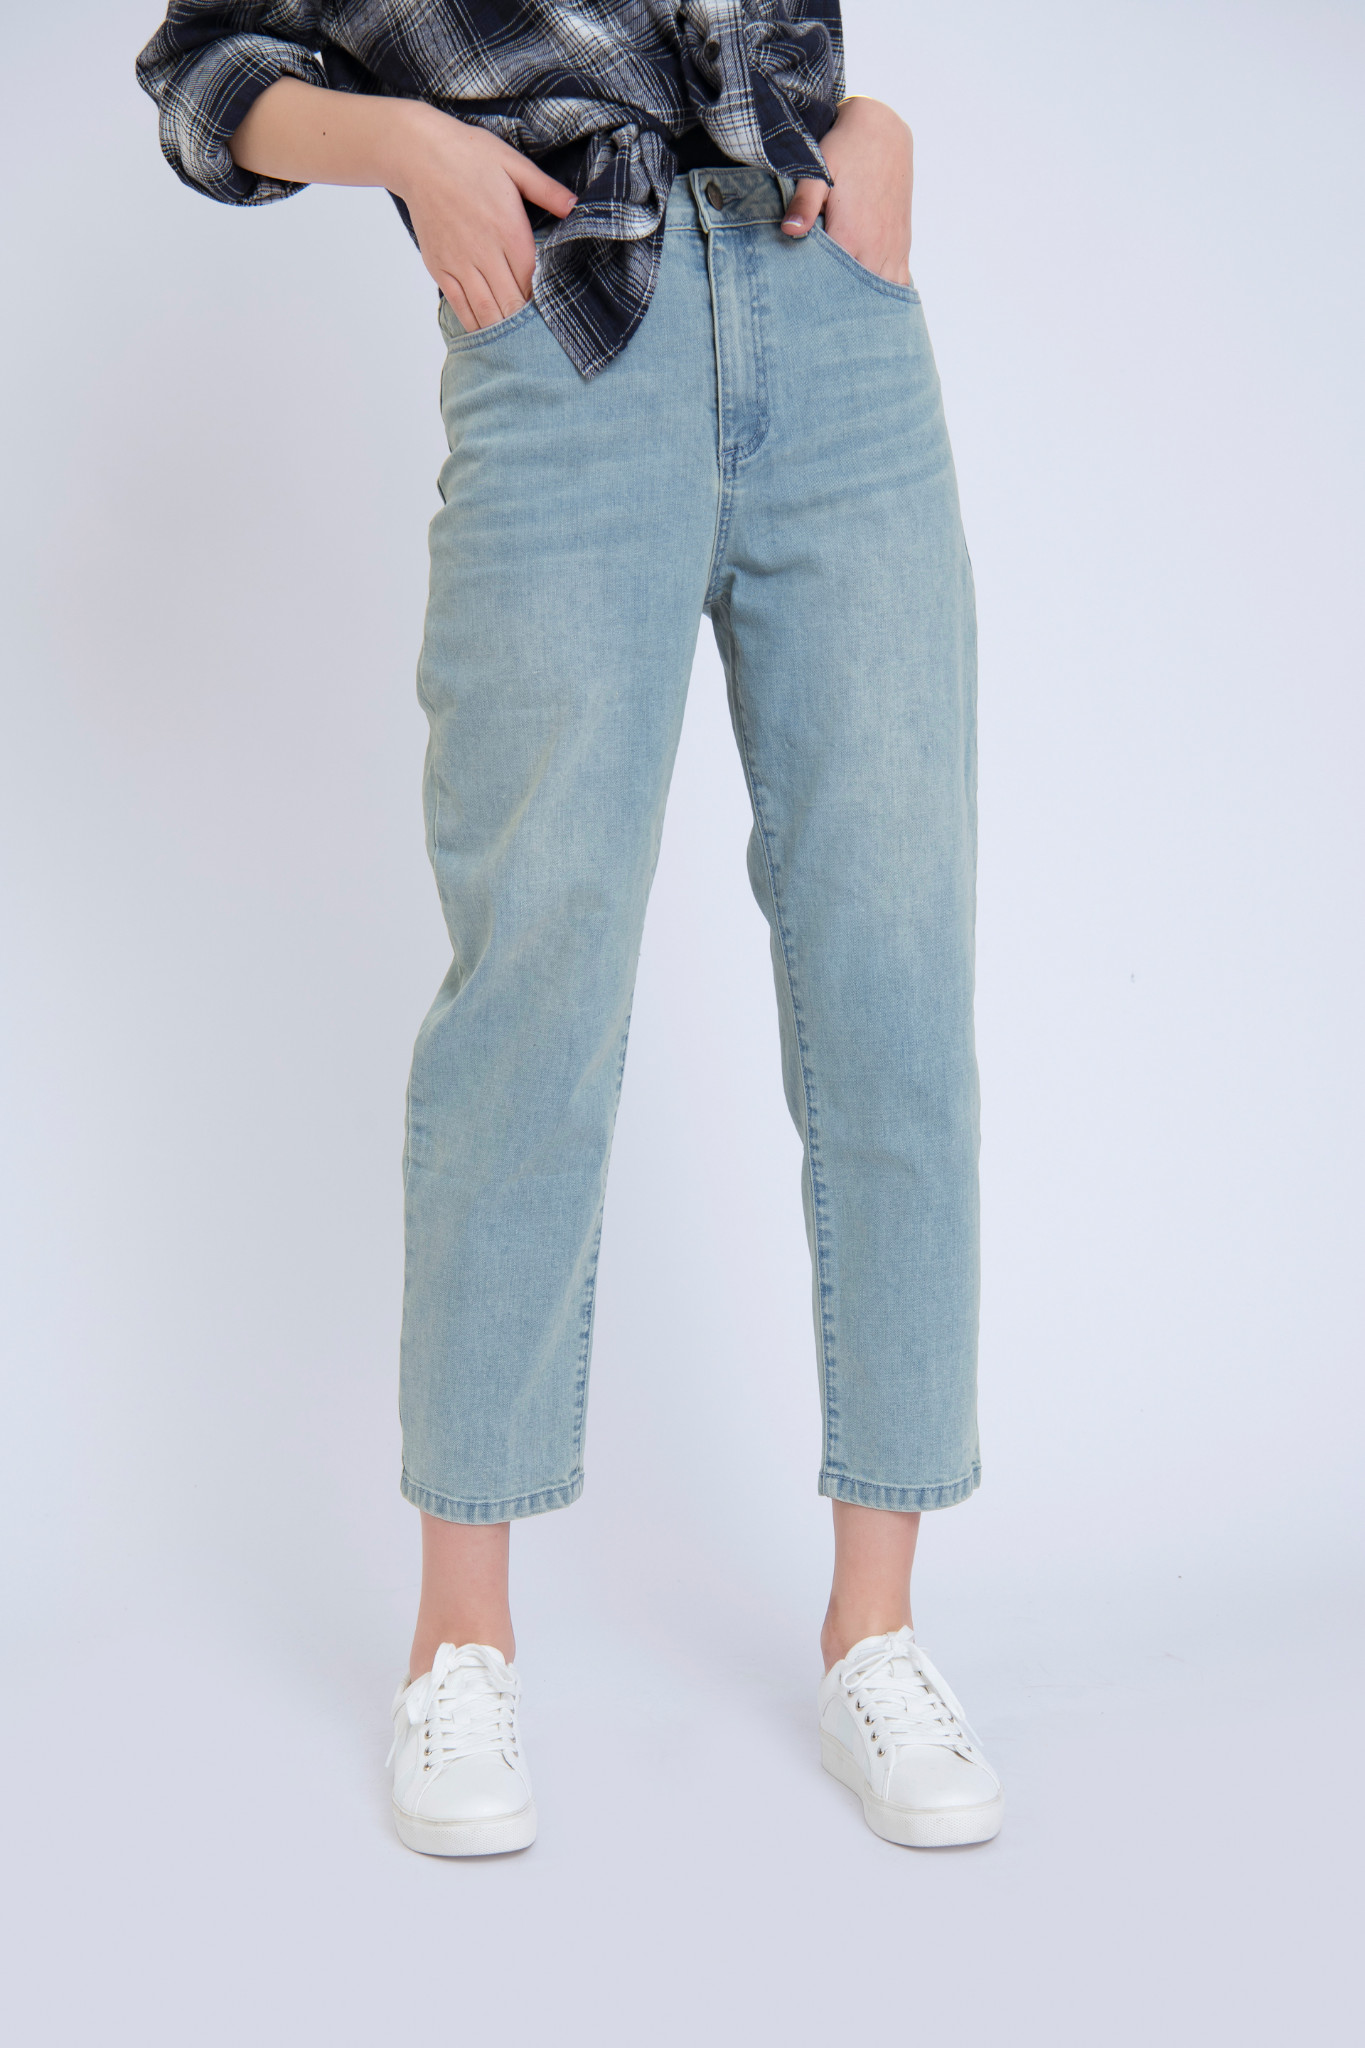 QUẦN JEANS NỮ MOM JEANS  BASIC